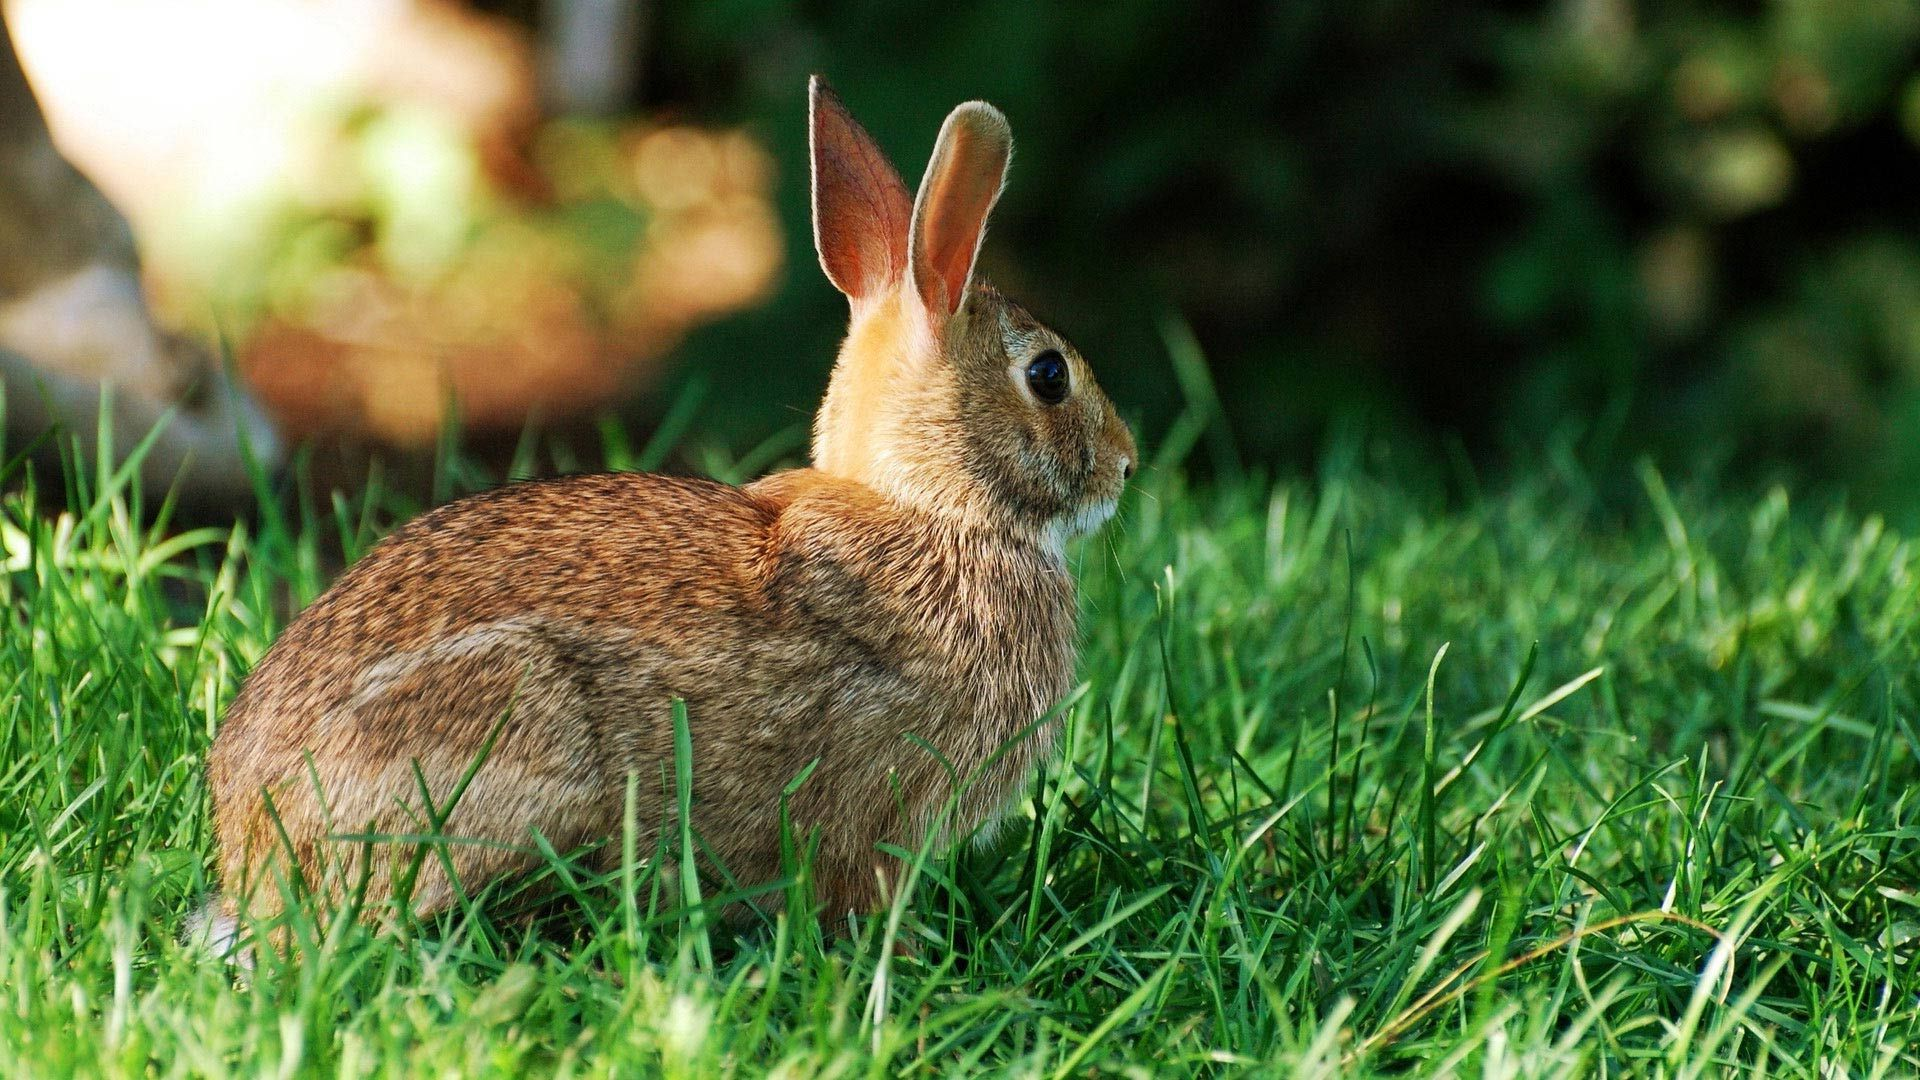 Pictures Of Hares And Rabbits